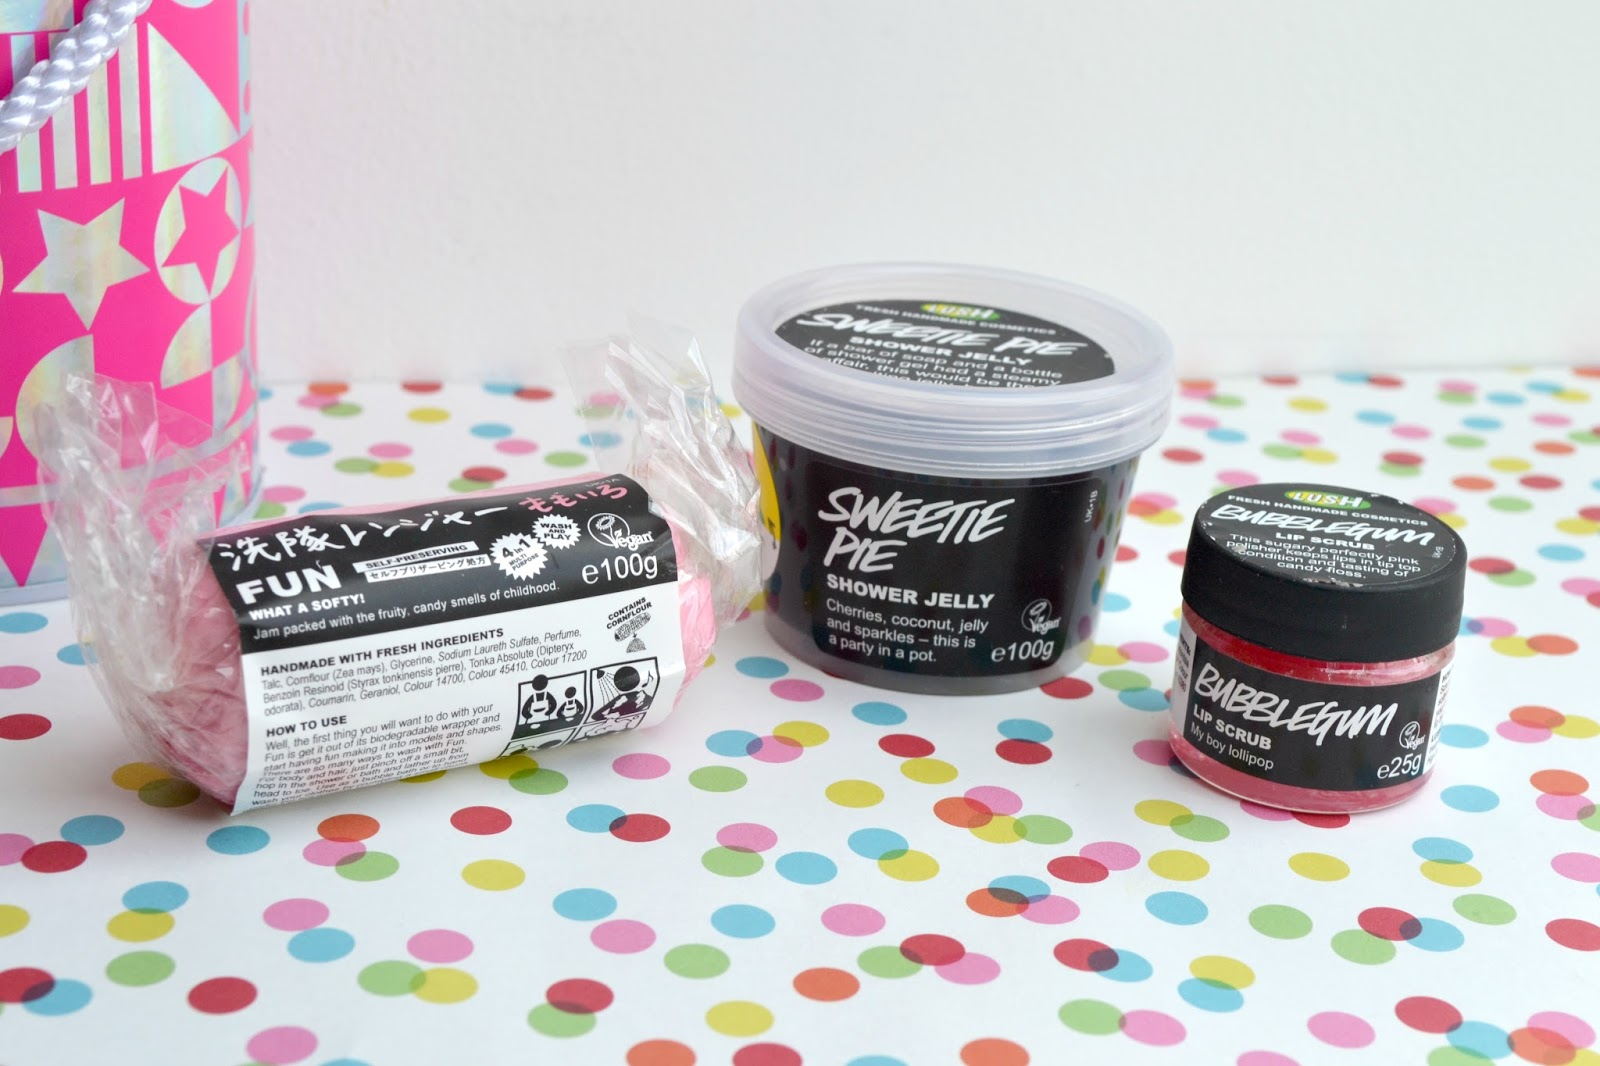 Lush: Sweetest Thing Gift! Pink Fun, Sweetie Pie Shower Jelly, Bubblegum lip scrub